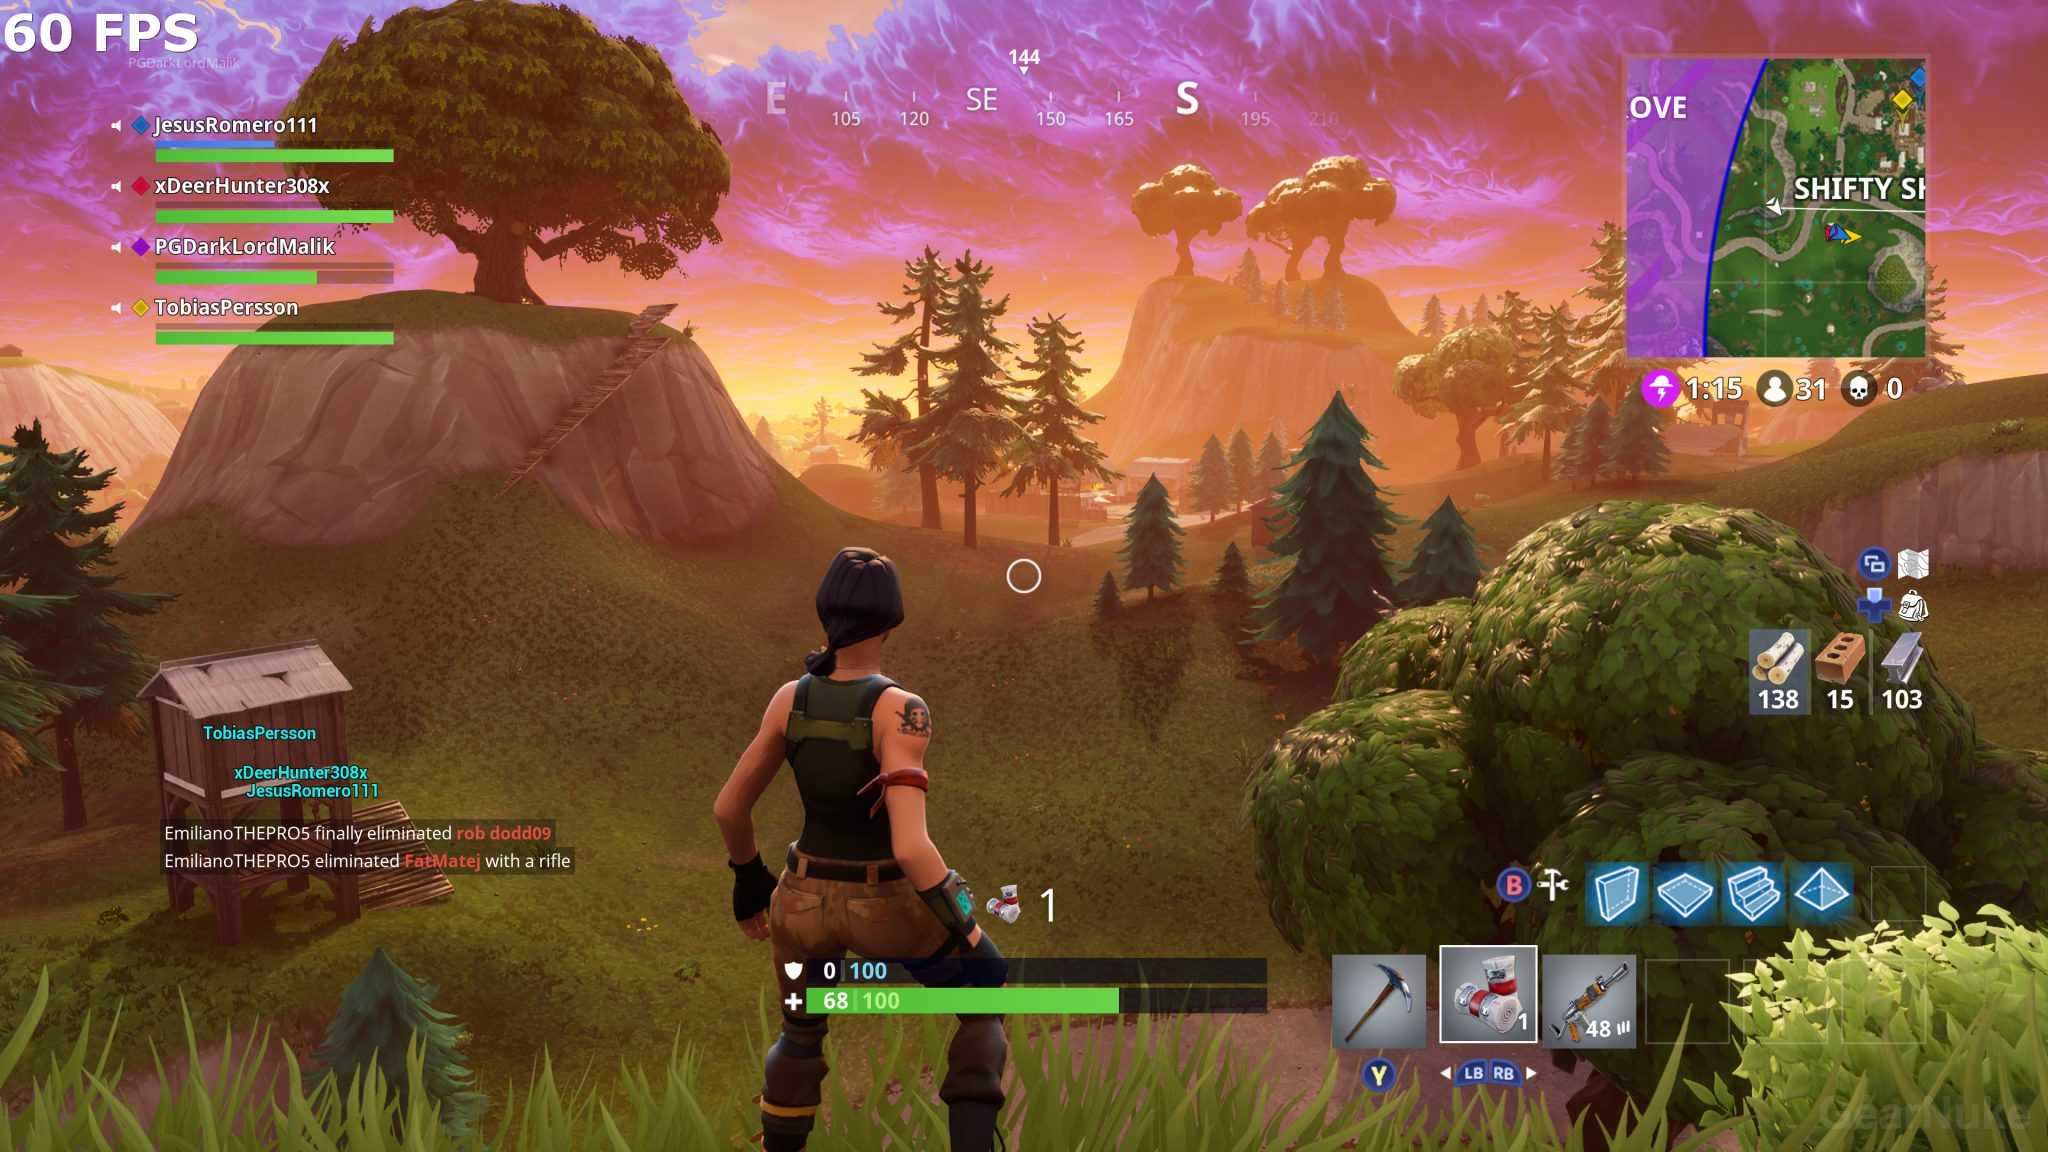 Iphone Pretty Wallpaper Fortnite Is Stunning At 4k 60 Fps On Xbox One X Visual